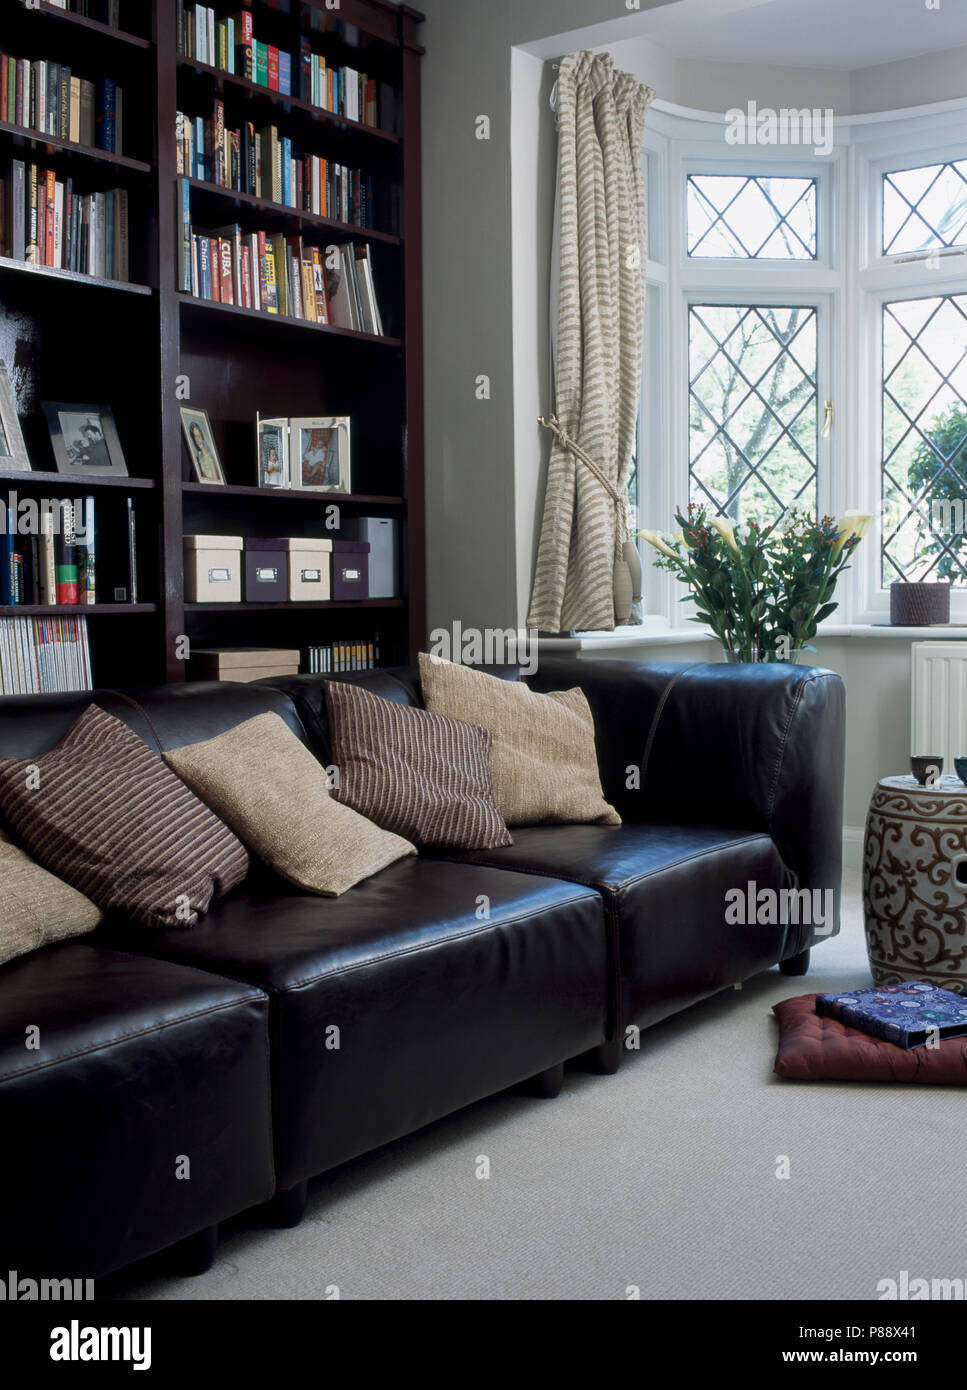 Black Leather Sofa With Cream Cushions In Front Of Black Bookshelves In Modern Livingroom Stock Photo Alamy